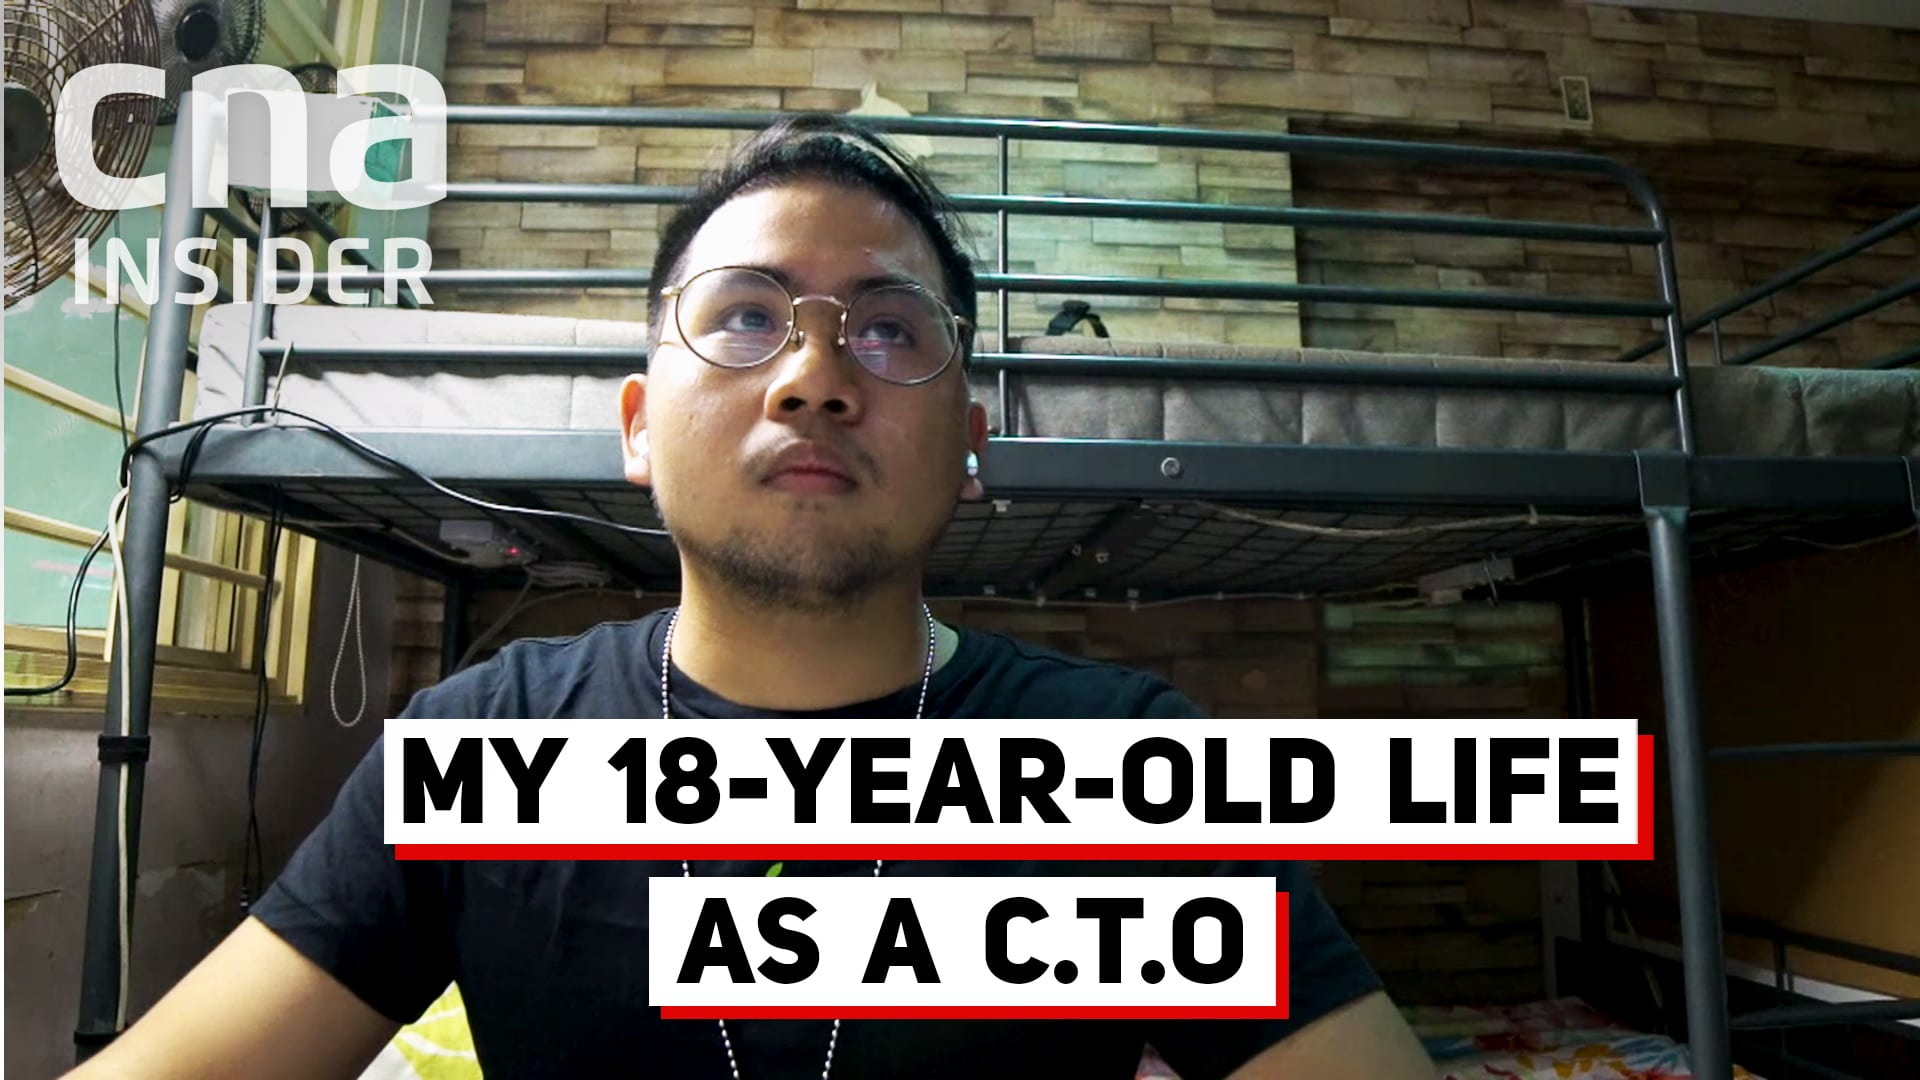 At 18, my life as a tech start-up founder